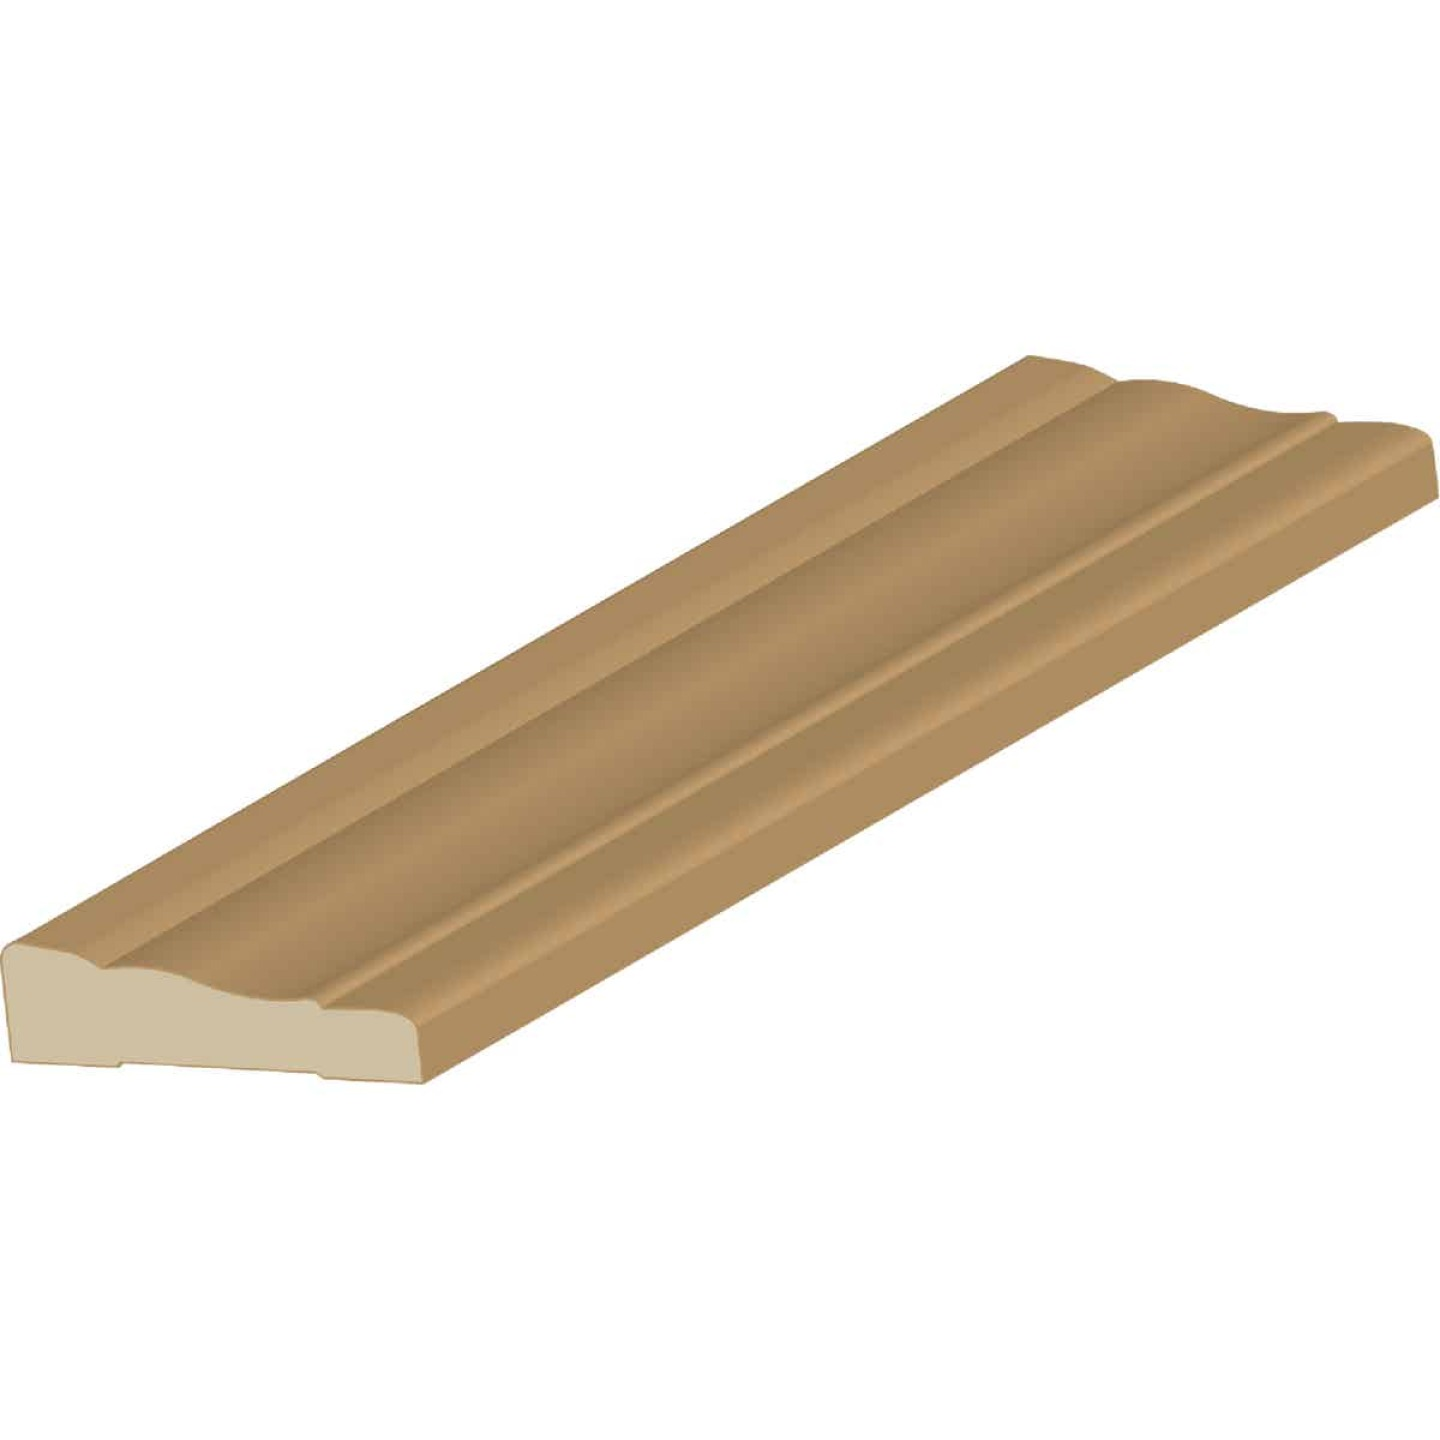 Cedar Creek WM356 11/16 In. W. x 2-1/4 In. H. x 7 Ft. L. Natural Finger Joint Pine Colonial Casing Molding Image 1